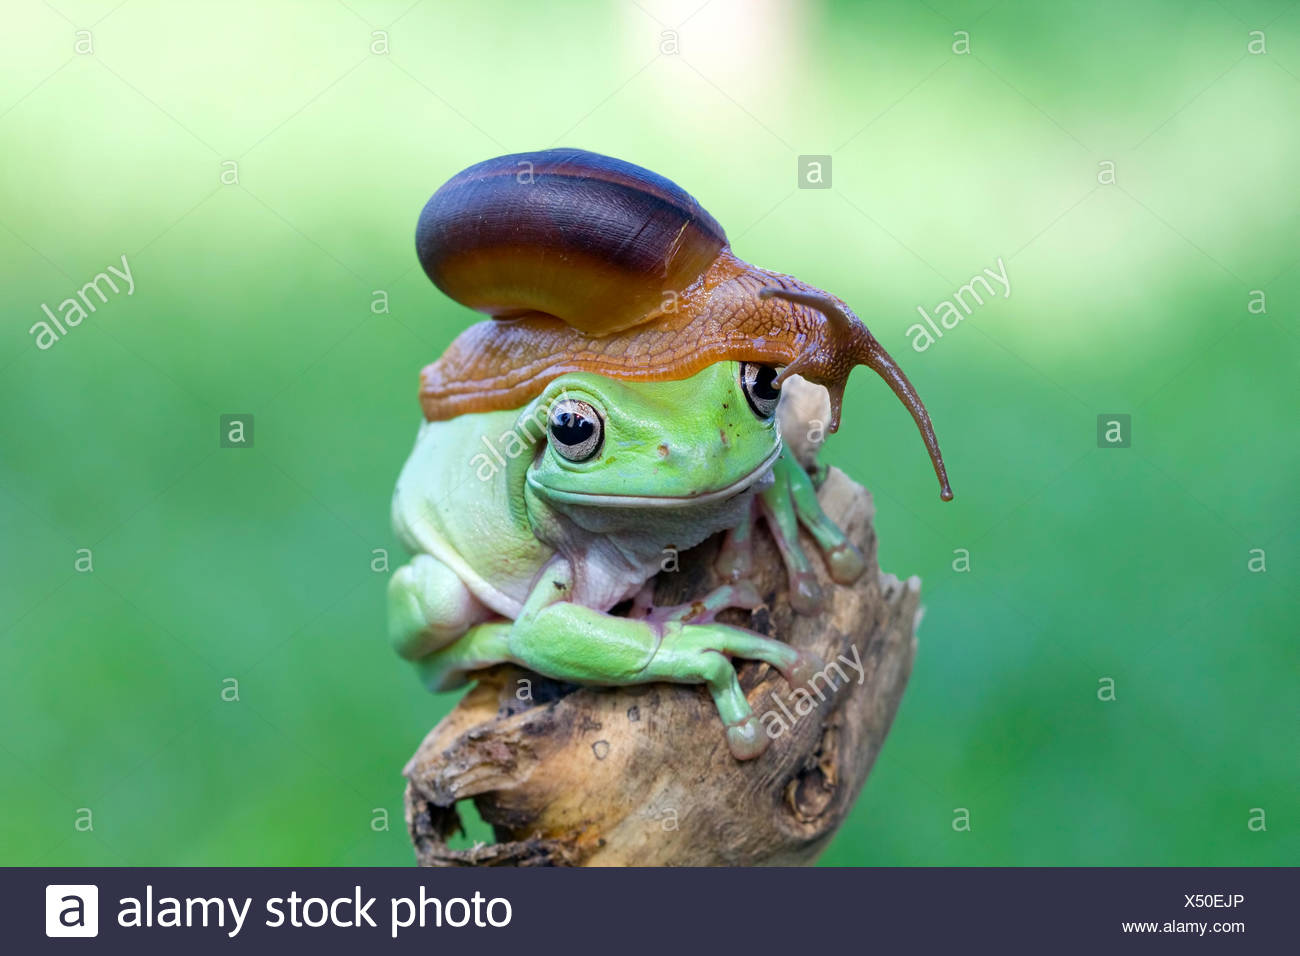 Snail sitting on top of a frog - Stock Image